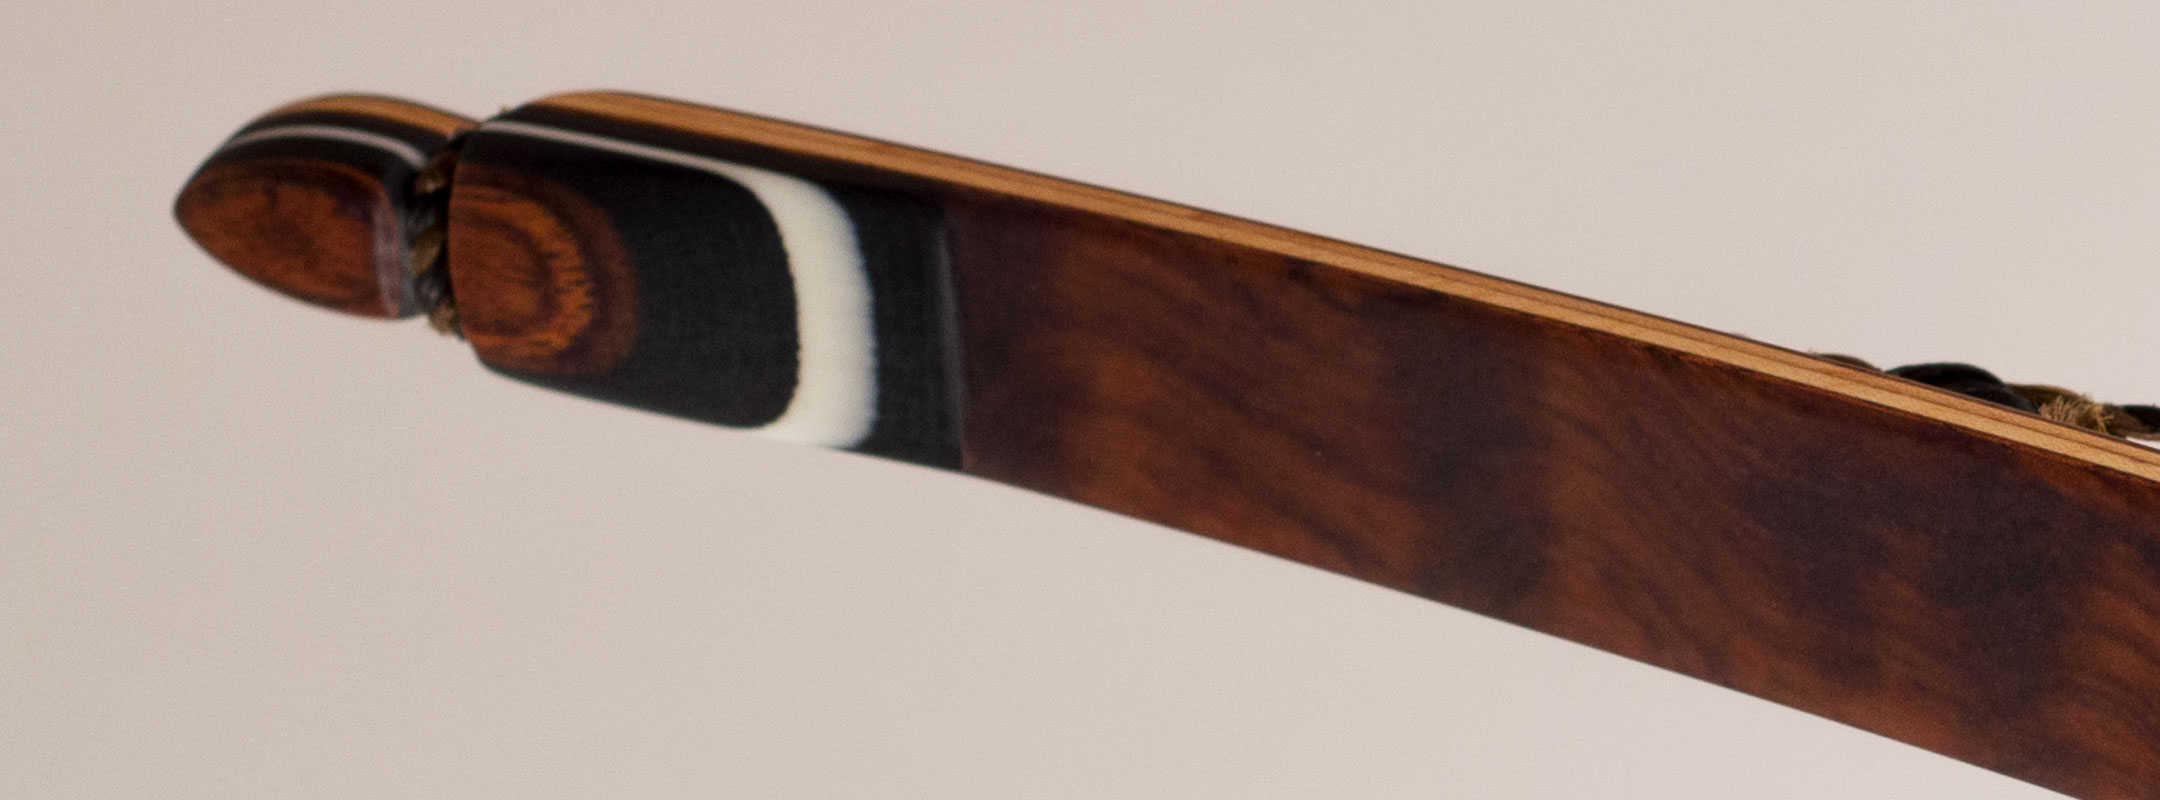 Limb tip of a traditional longbow with reflex and deflex